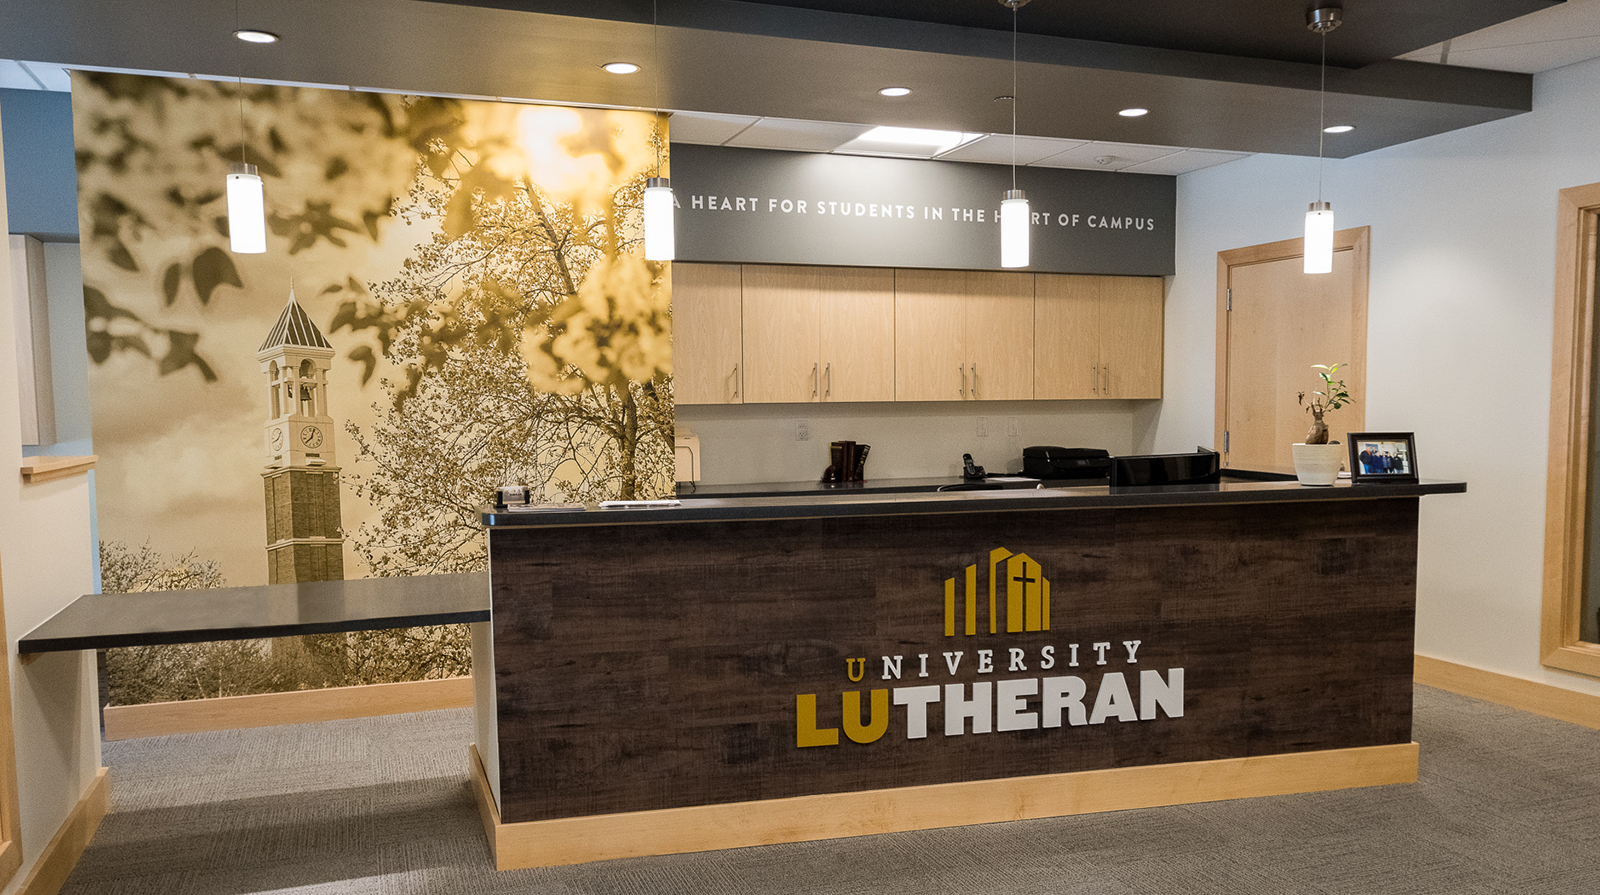 Full Environmental Design by Creativeinc. for University Lutheran Church in West Lafayette, IN. Custom Signage, Interior Signage, Exterior Signage, Wayfinding Signage, ADA Compliant Signage, Wall Wrap, Wall Graphics, Cut Vinyl Graphics, Elevator Graphics, 3D Signage, Frosted Vinyl, Design Services, Installation.